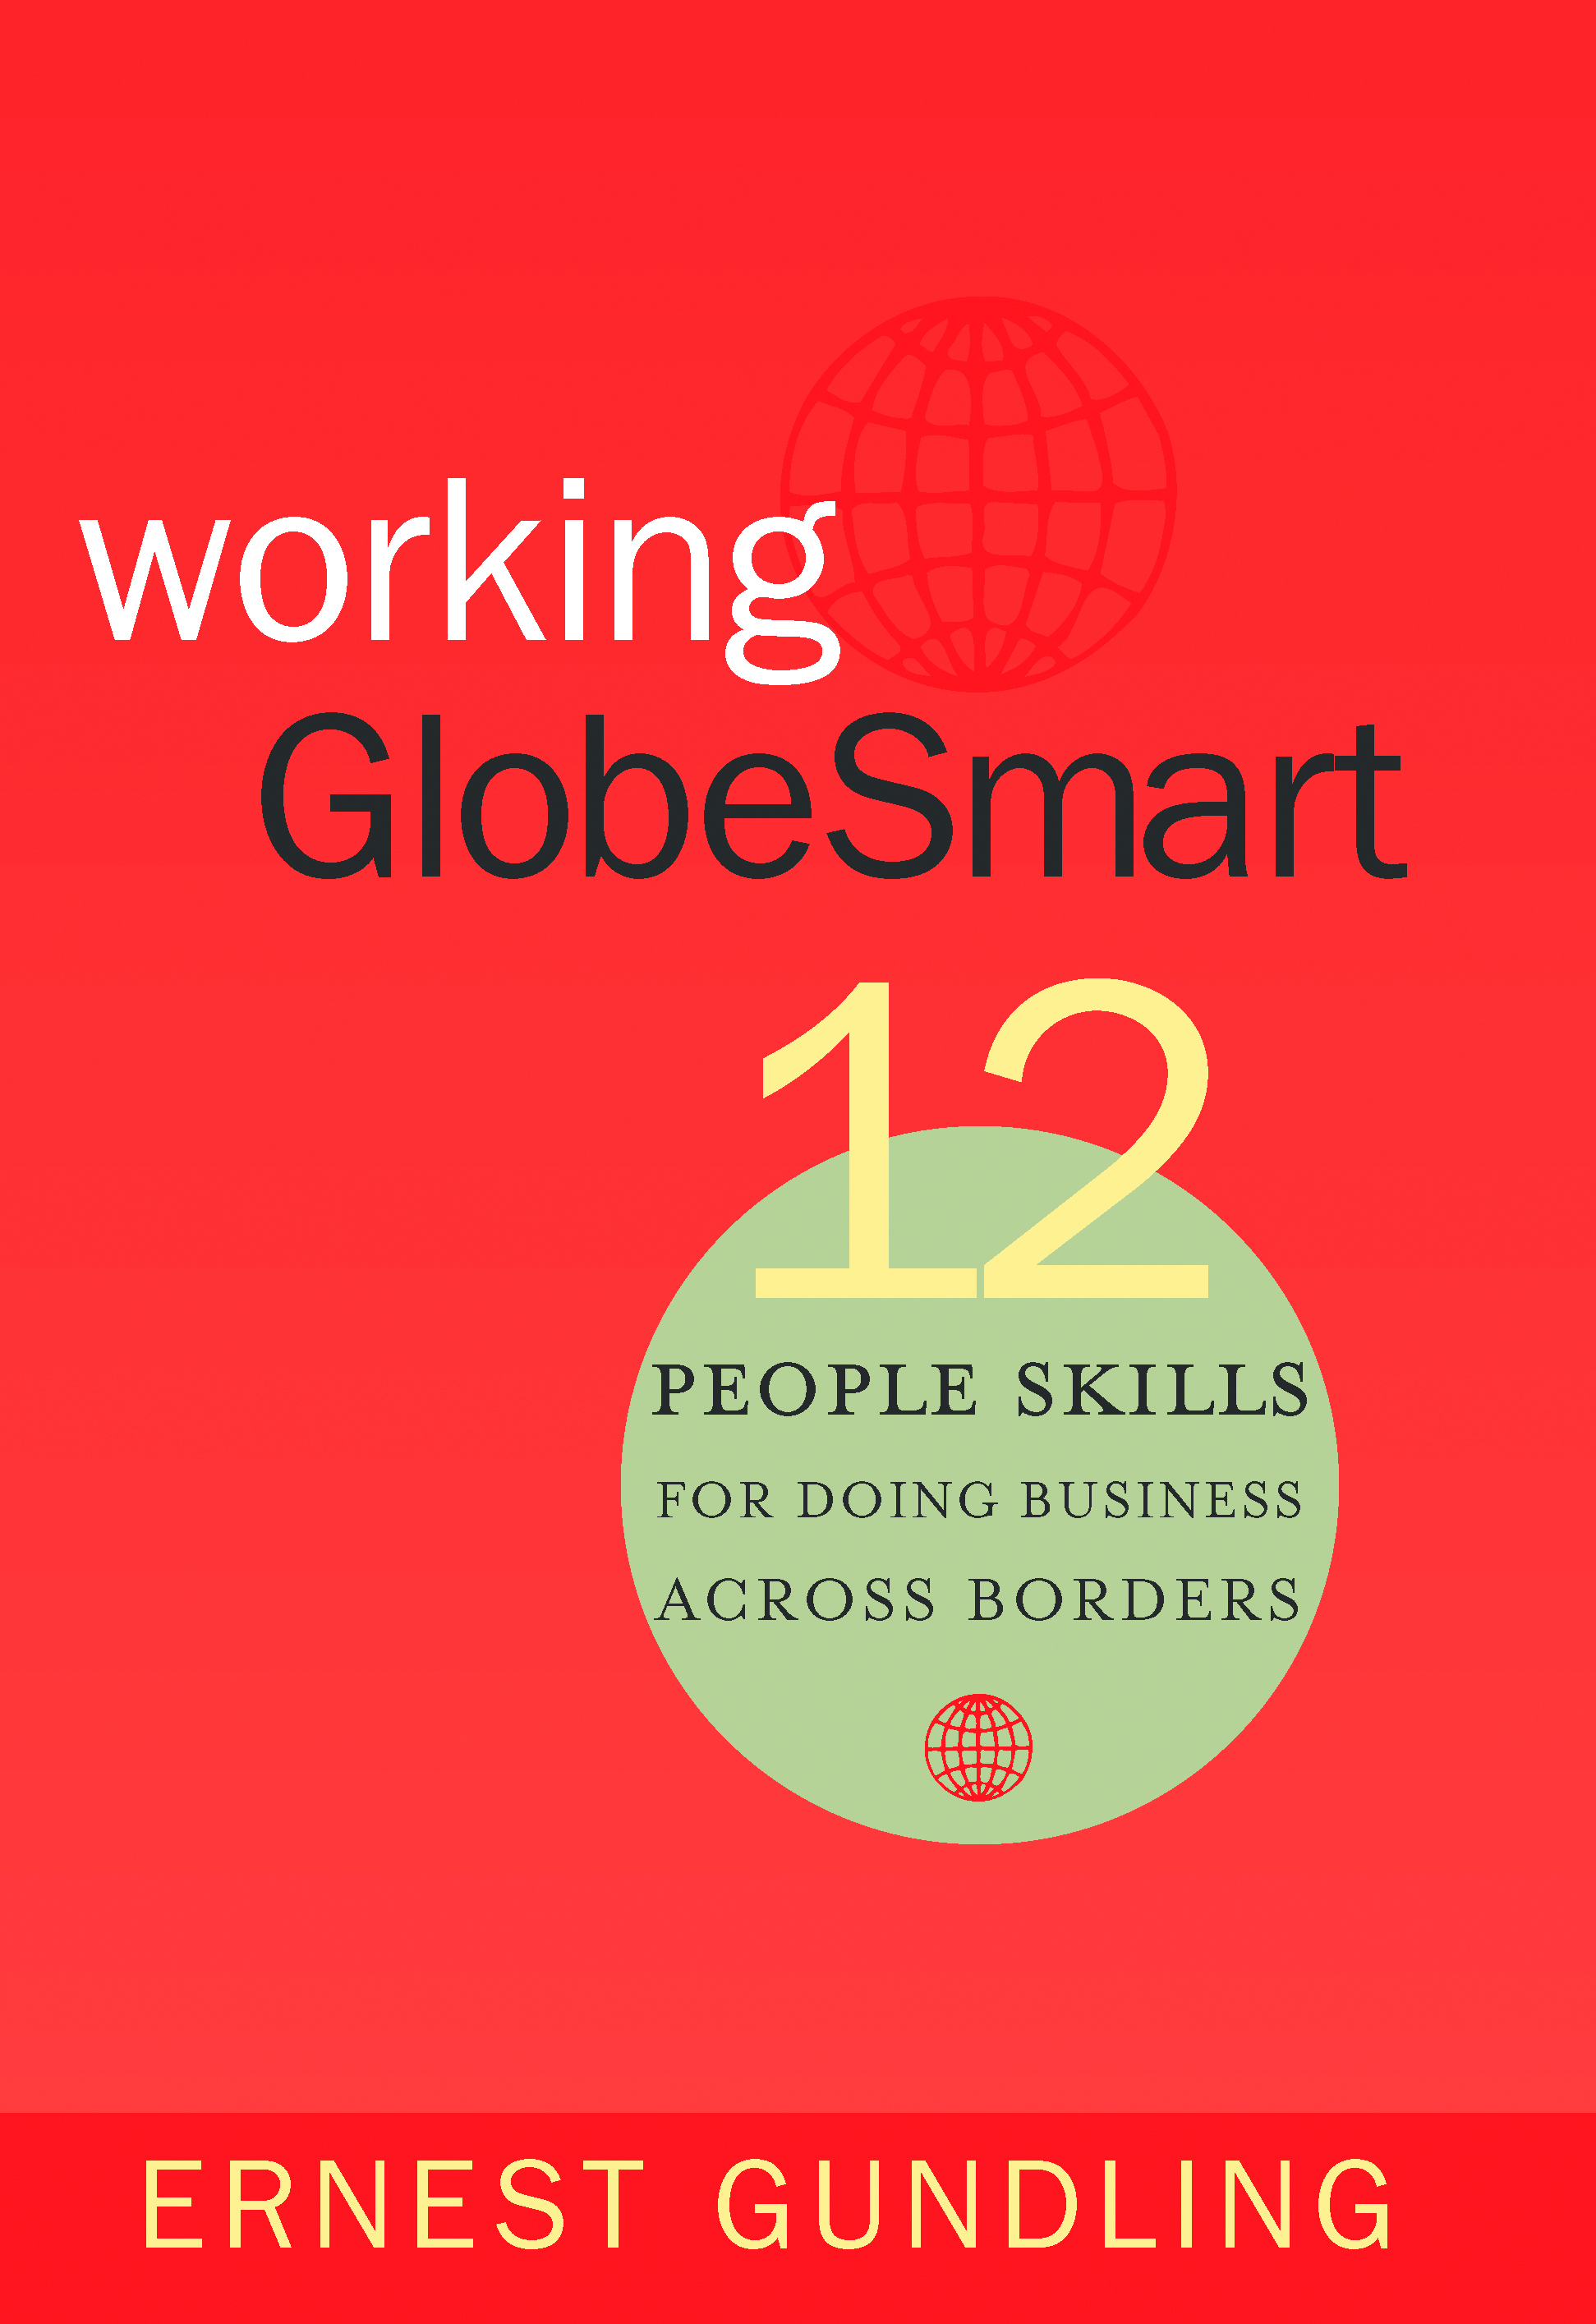 WorkingGlobeSmart hi-res.jpg